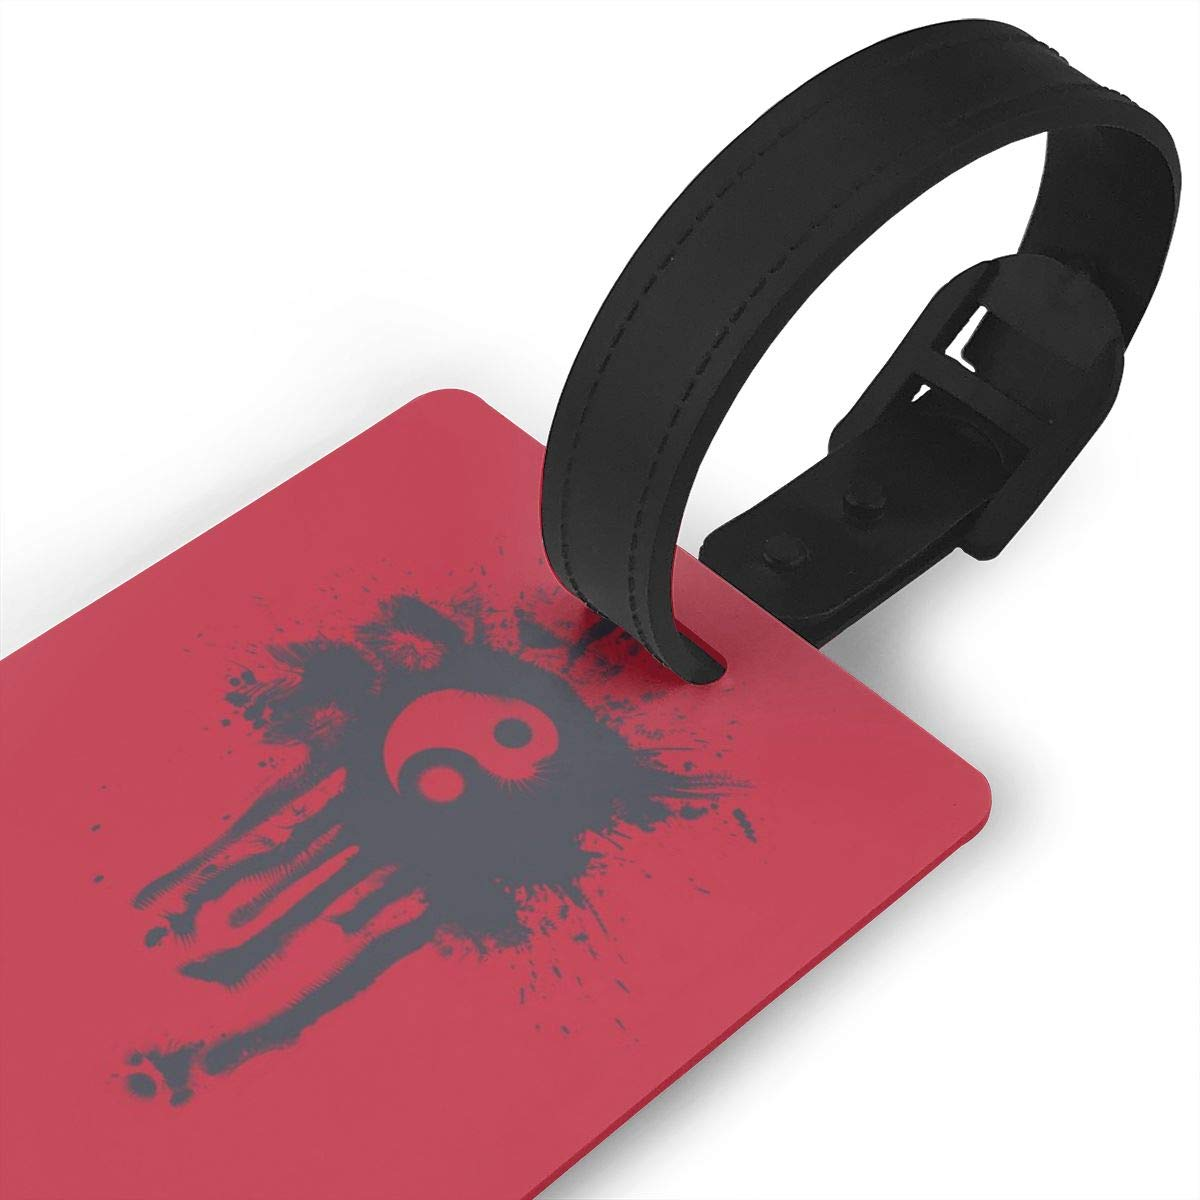 Yin Yang Red Baggage Tag For Travel Tags Accessories 2 Pack Luggage Tags